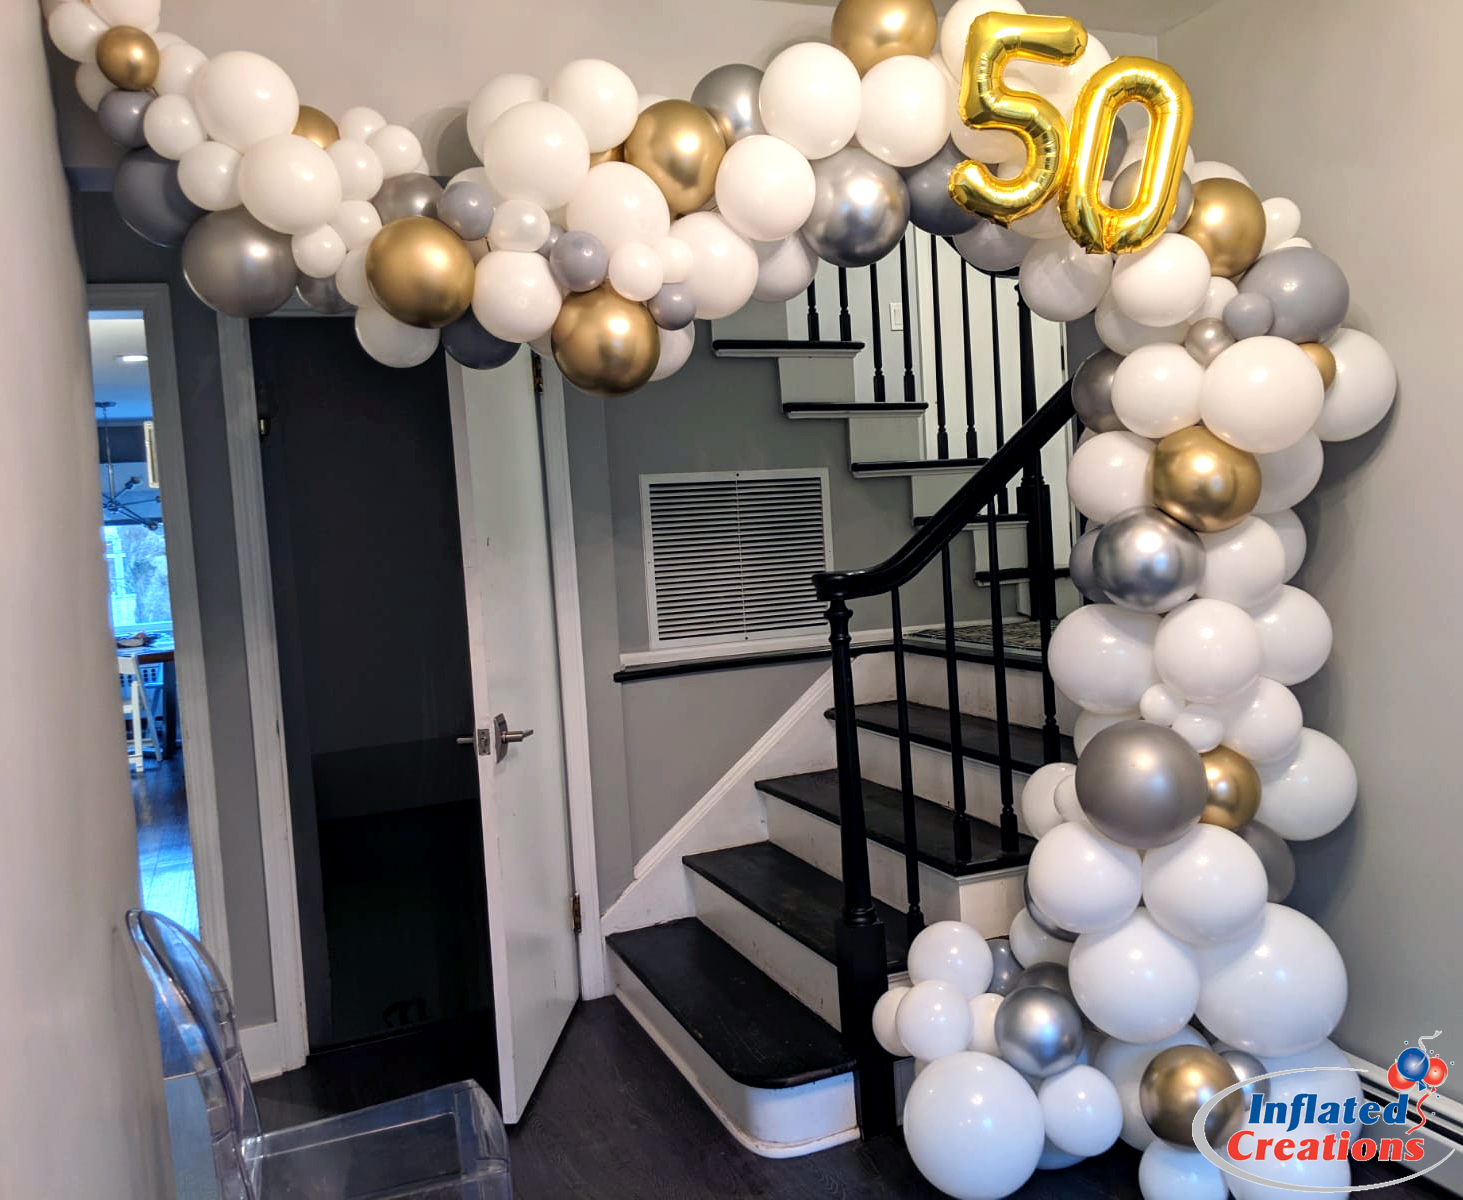 Megaloon Numbers 50th Anniversary Arch